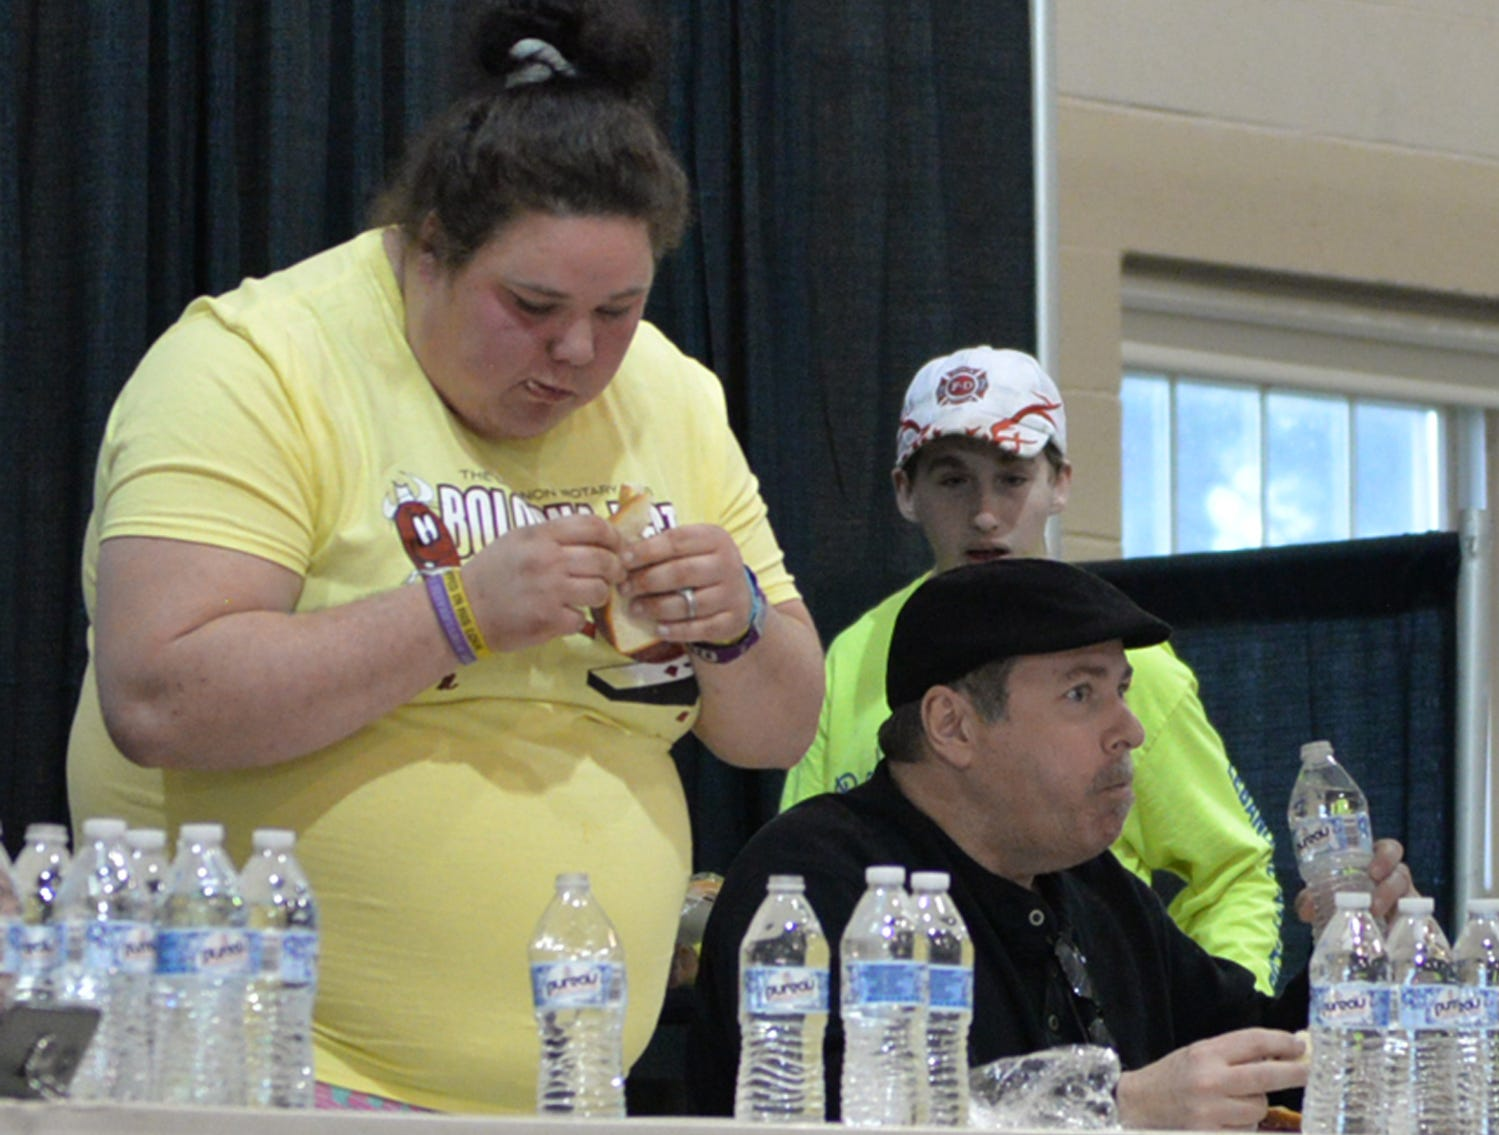 The Bologna Eating Contest at The Lebanon Rotary Club's Bologna Fest & Winter Carnival. The event was held on Saturday, January 26 at the Lebanon Valley Expo Center.